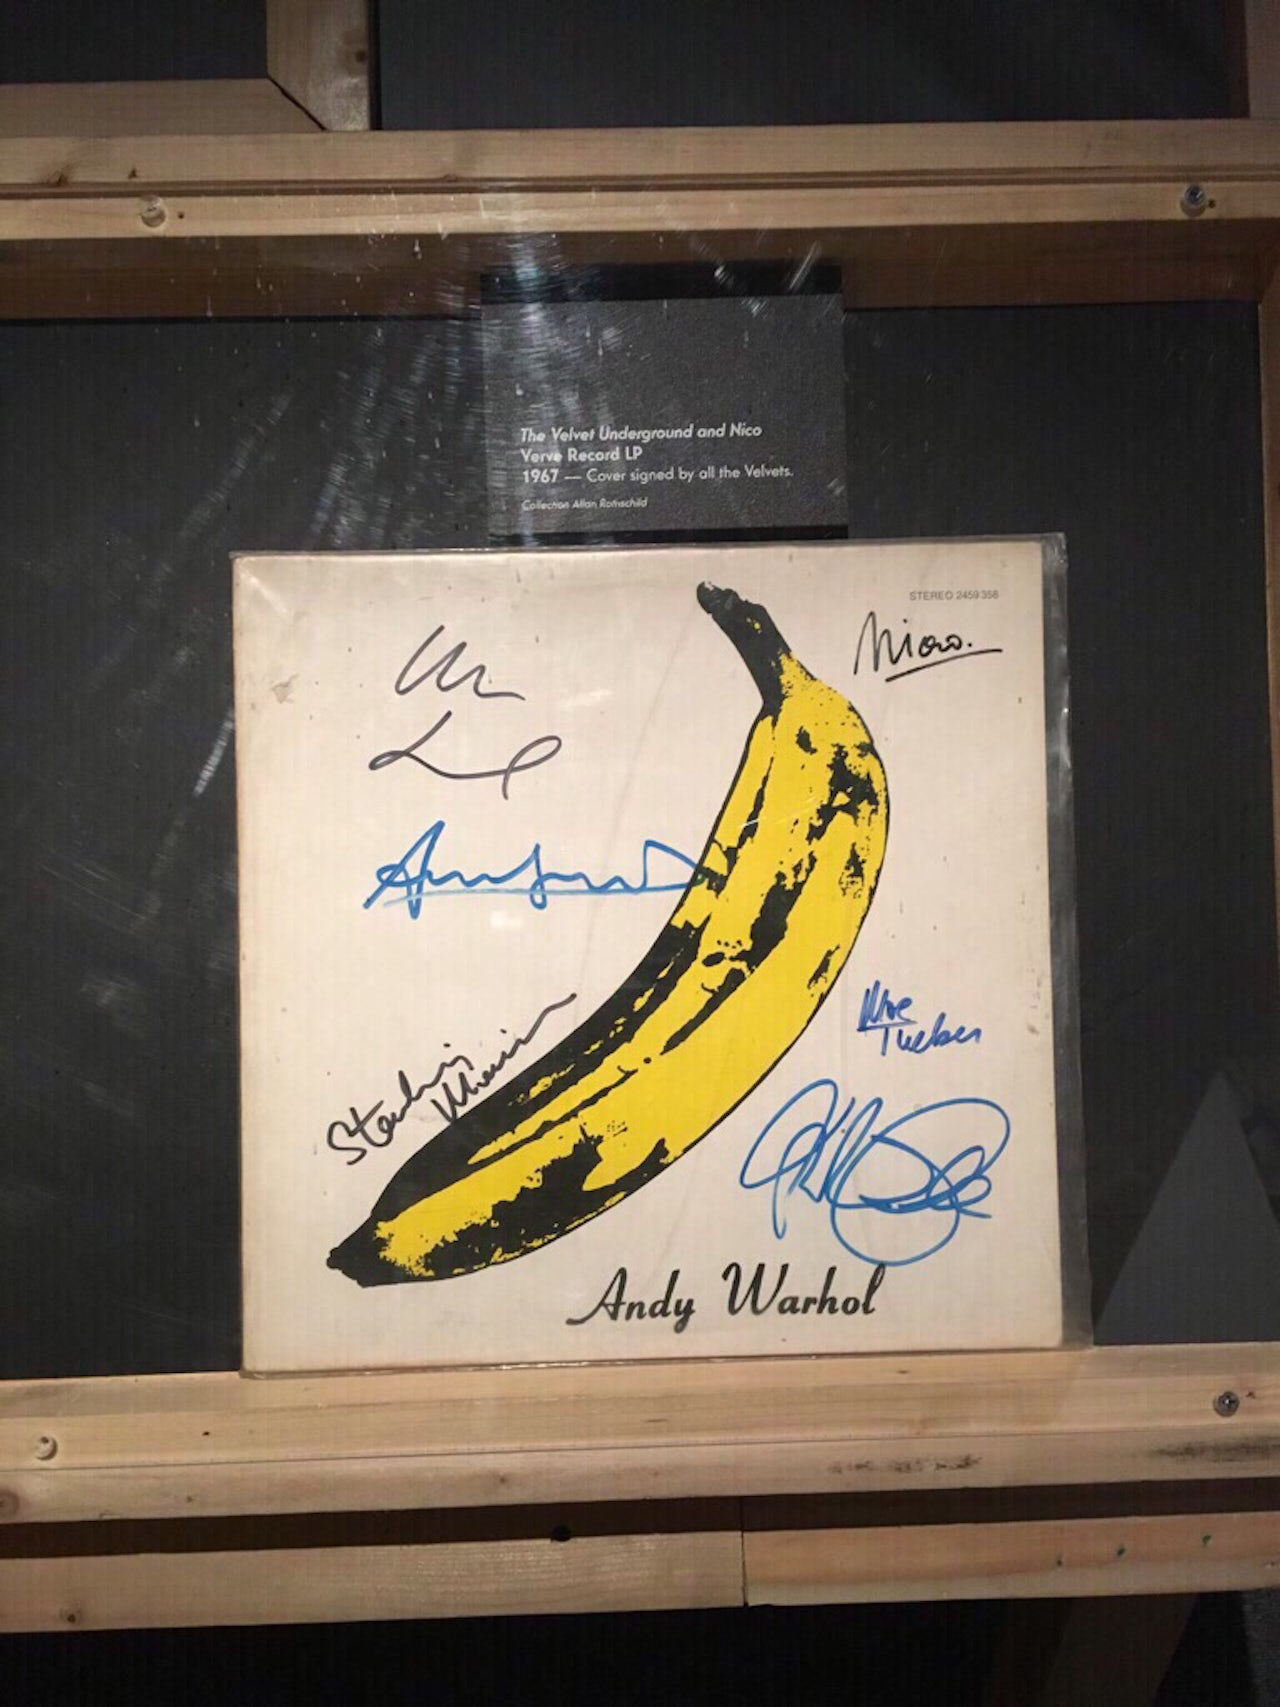 The Velvet Underground's first record, signed by every member of the band.